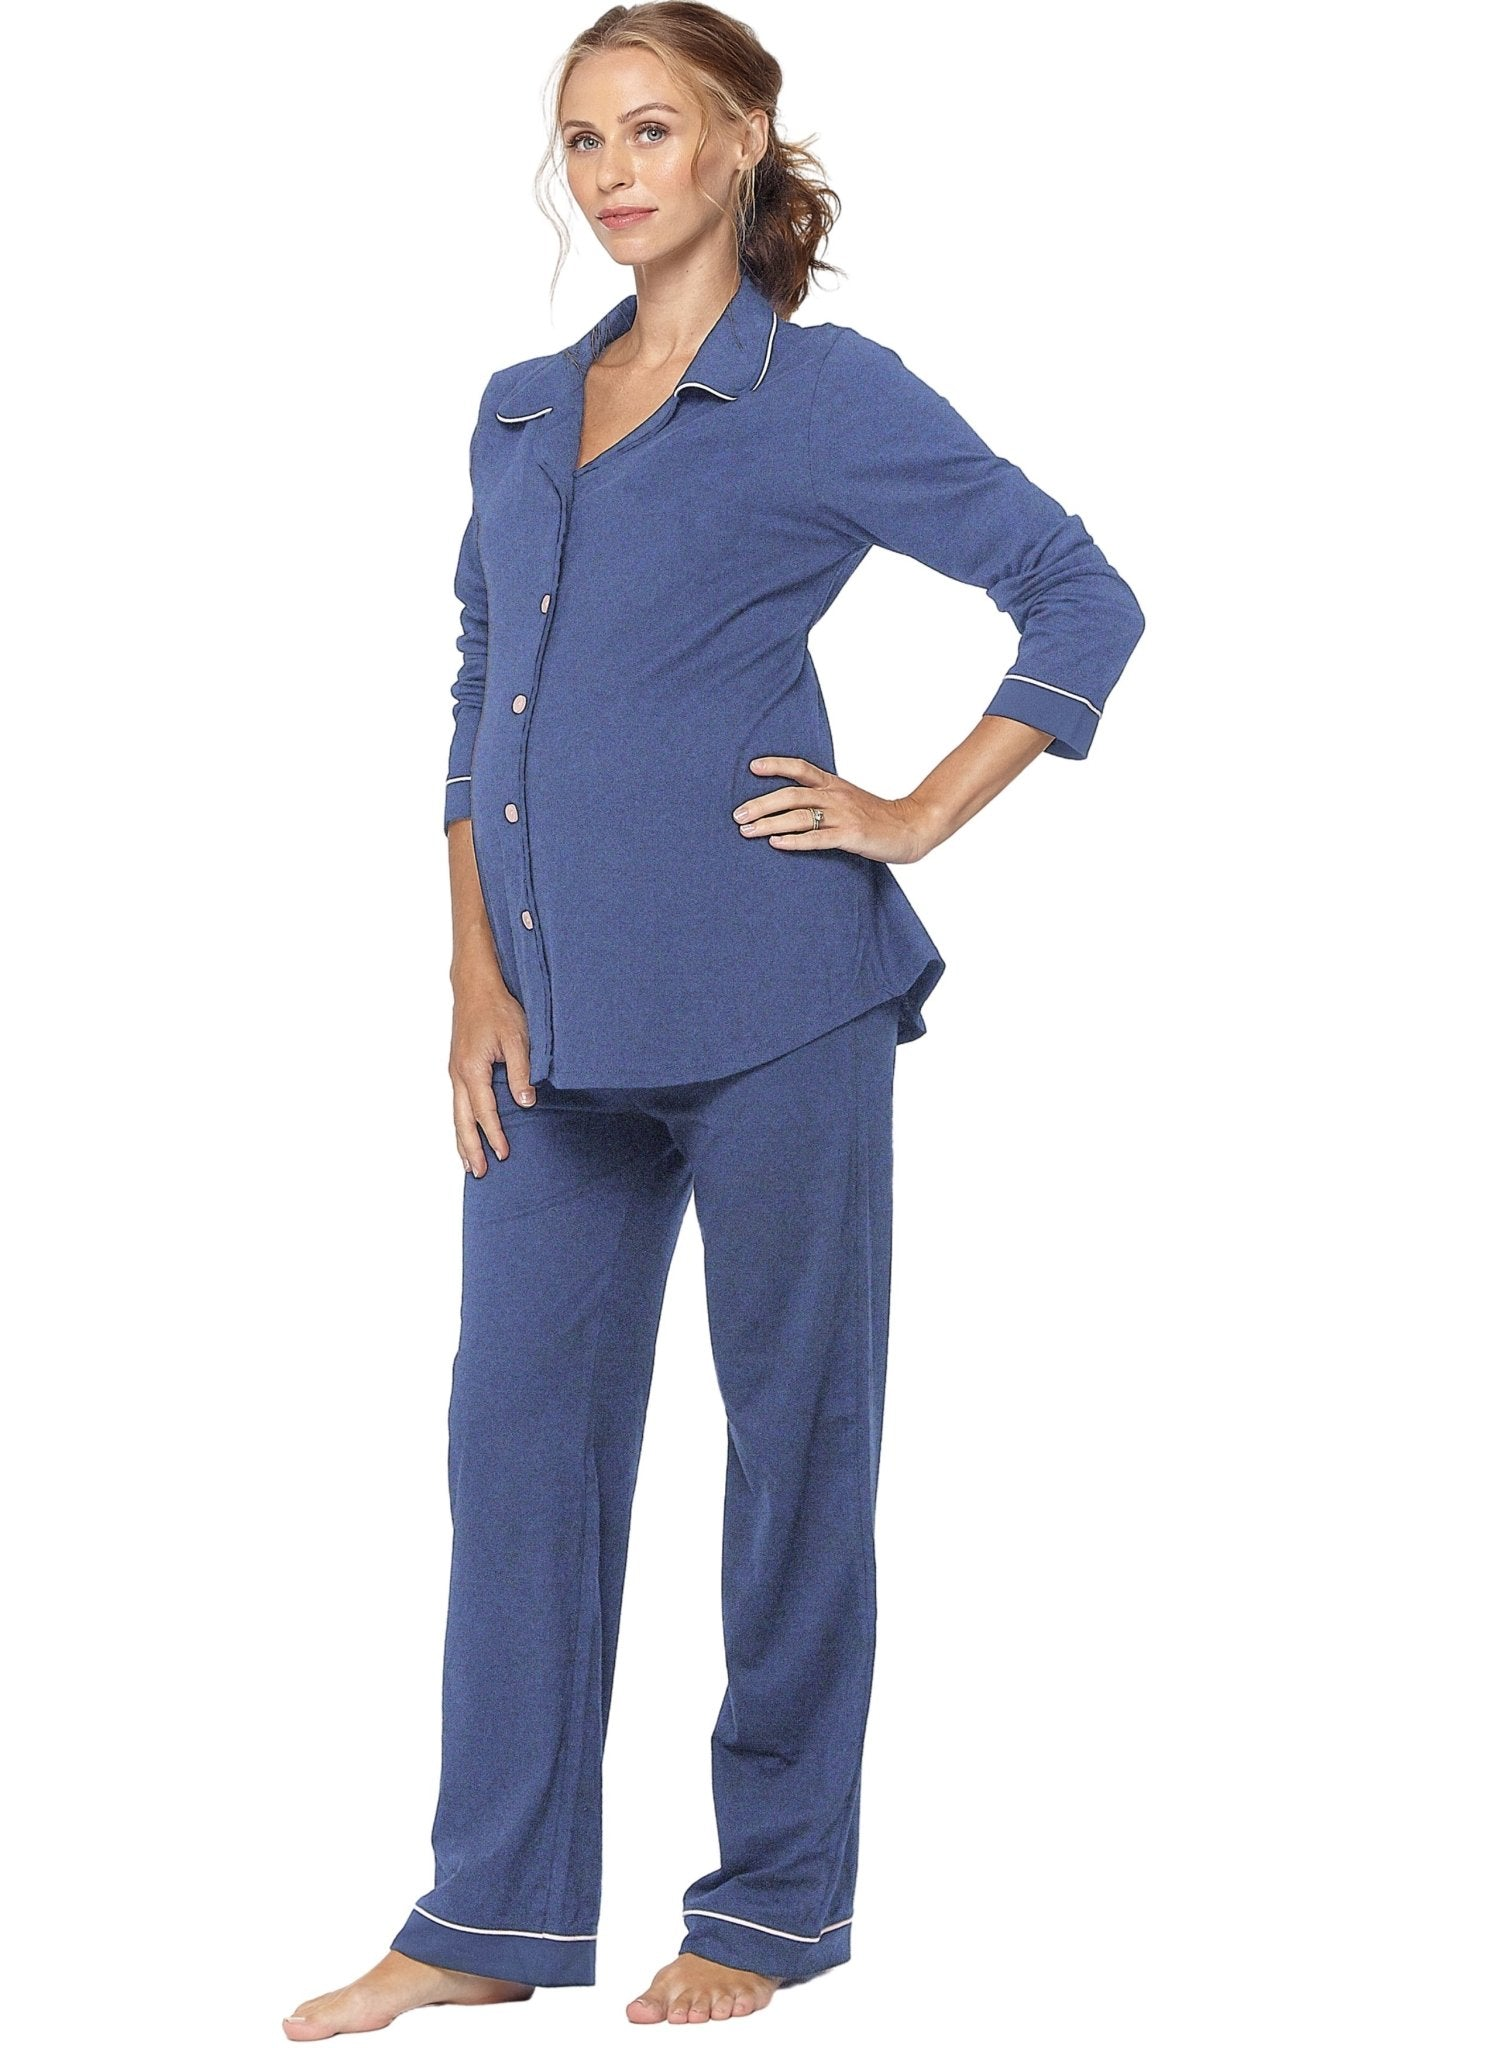 Lounge Chic Classic Maternity & Nursing PJ - Chambray Marl - Mums and Bumps